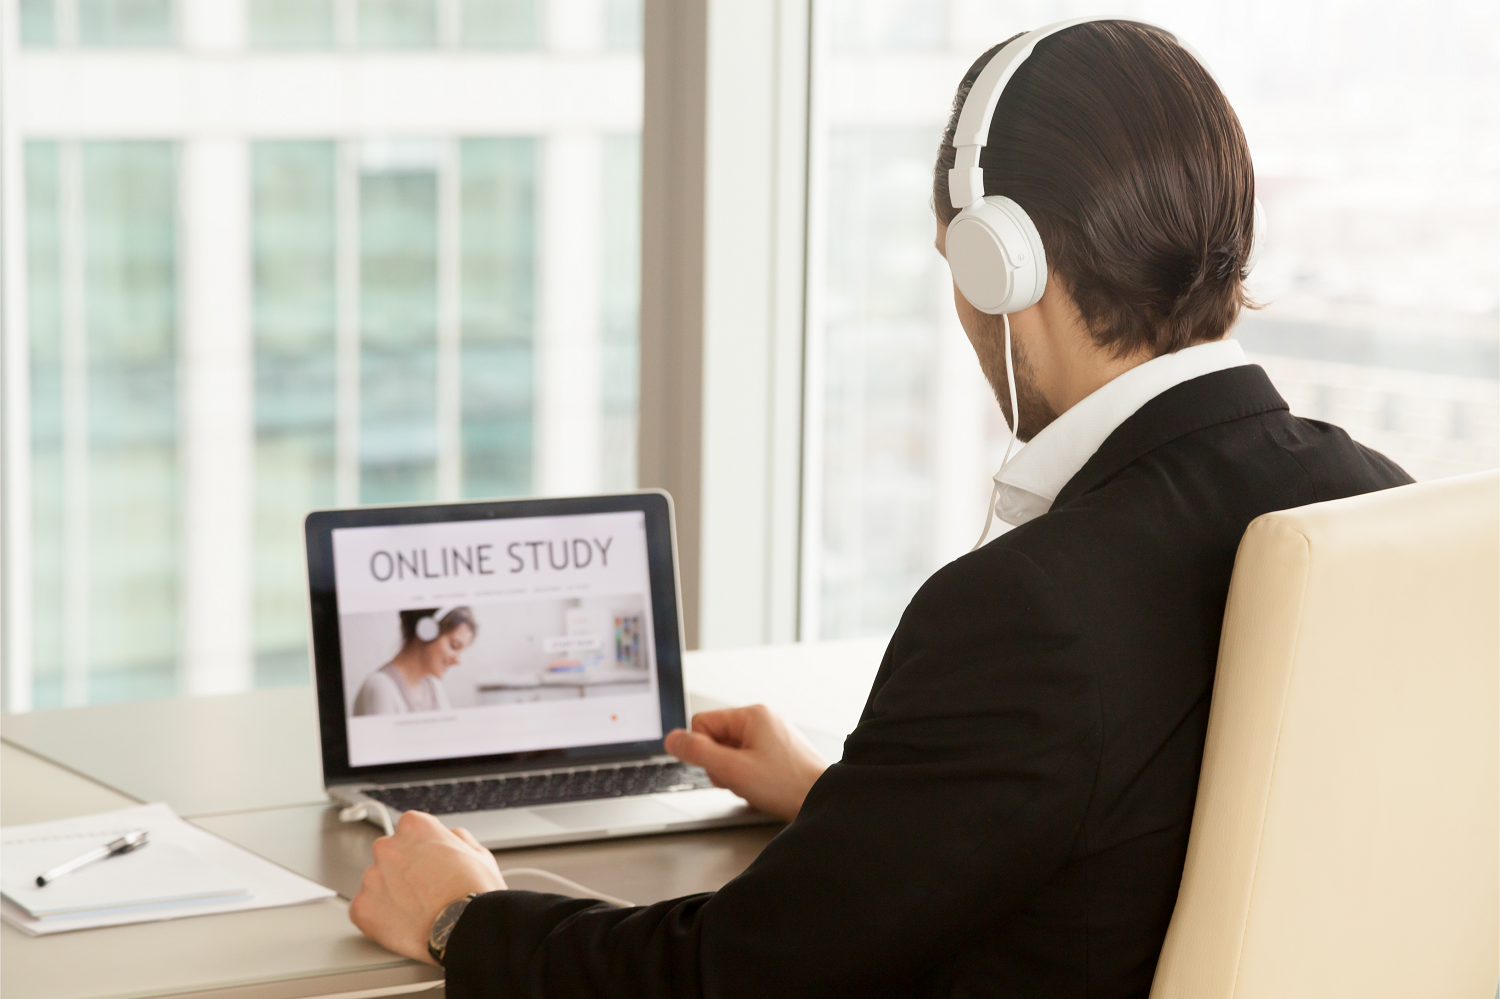 A man in headphones taking part in an online course on his laptop as part of his employer's staff engagement strategy.